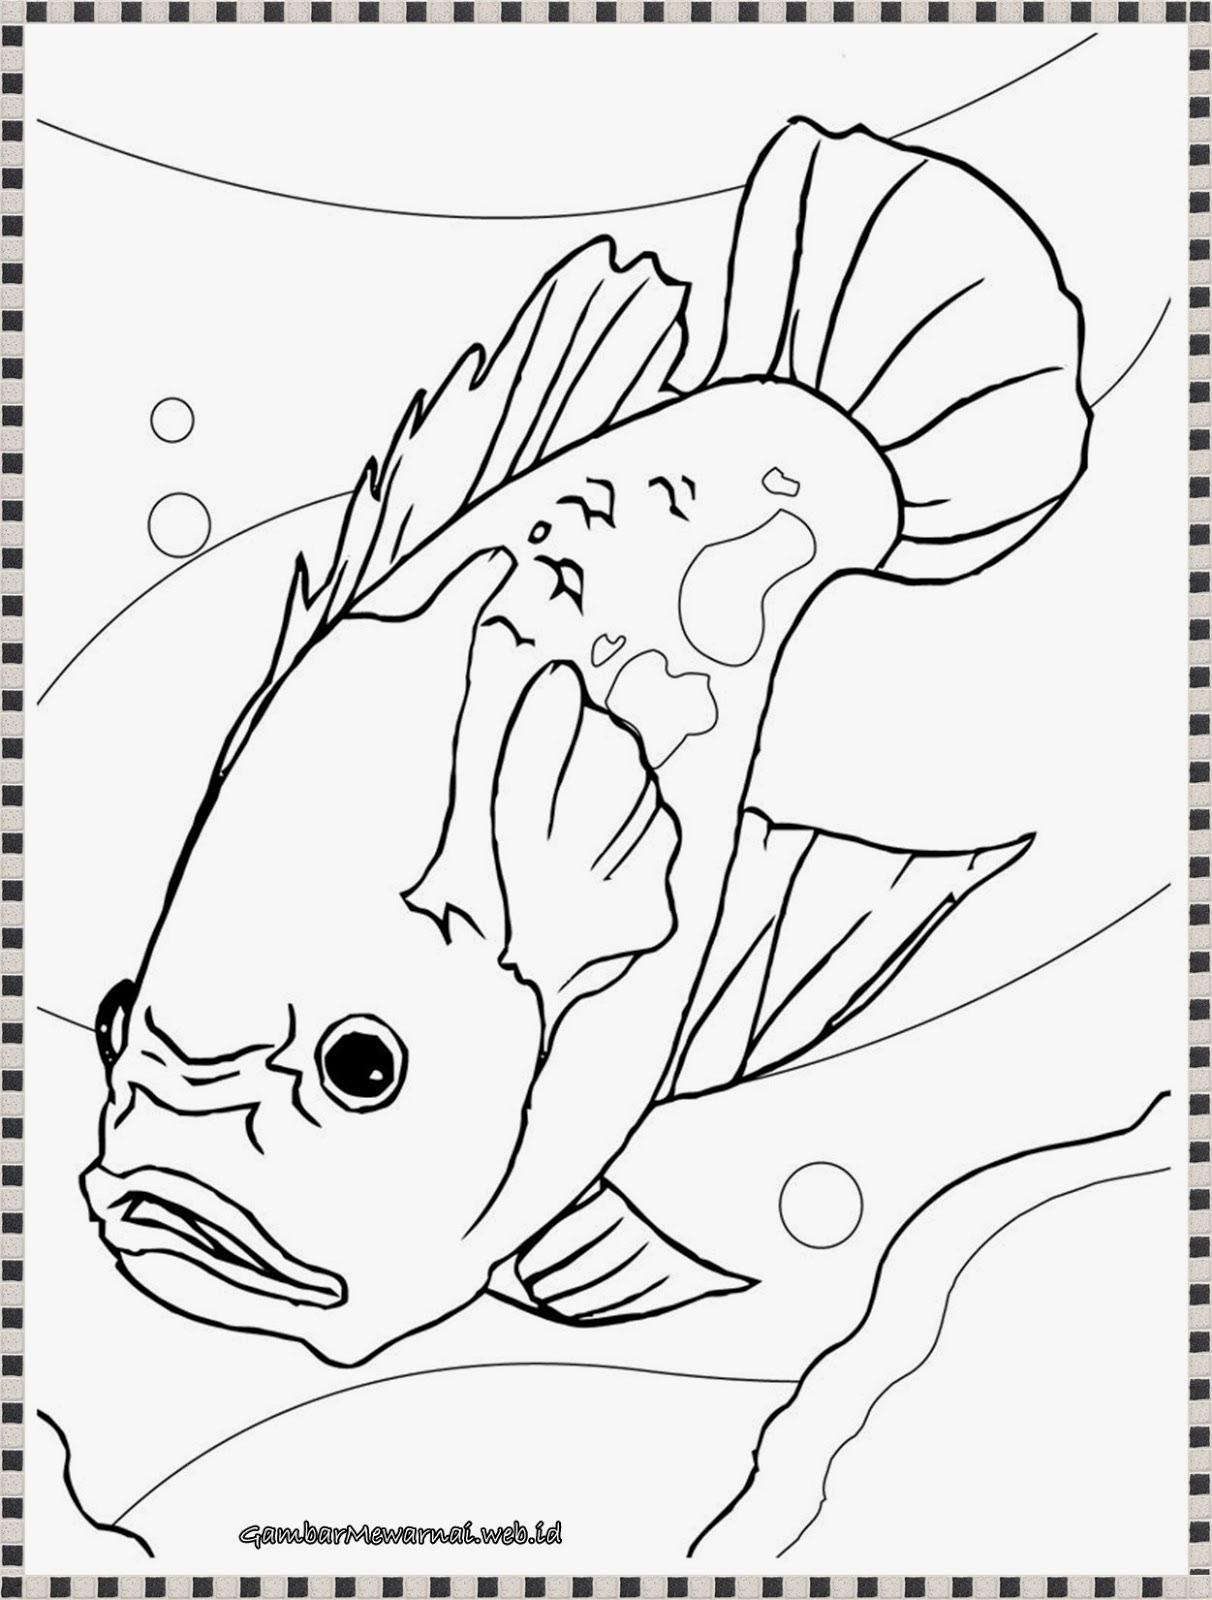 Aquarium Drawing For Kids At Getdrawings Com Free For Personal Use